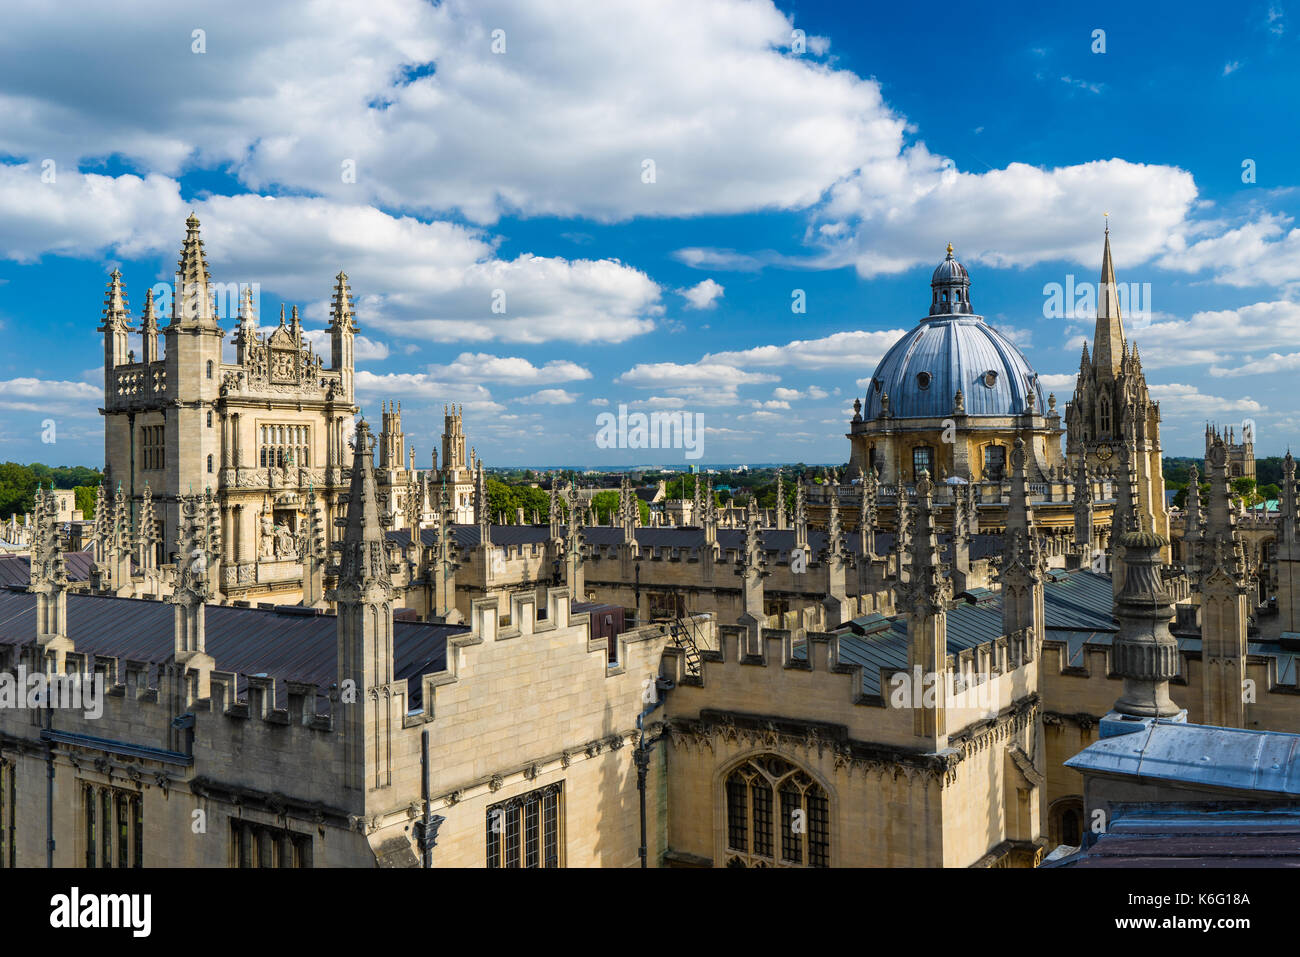 A view of the city skyline from the cupola of the Sheldonian Theater, Oxford, England. - Stock Image